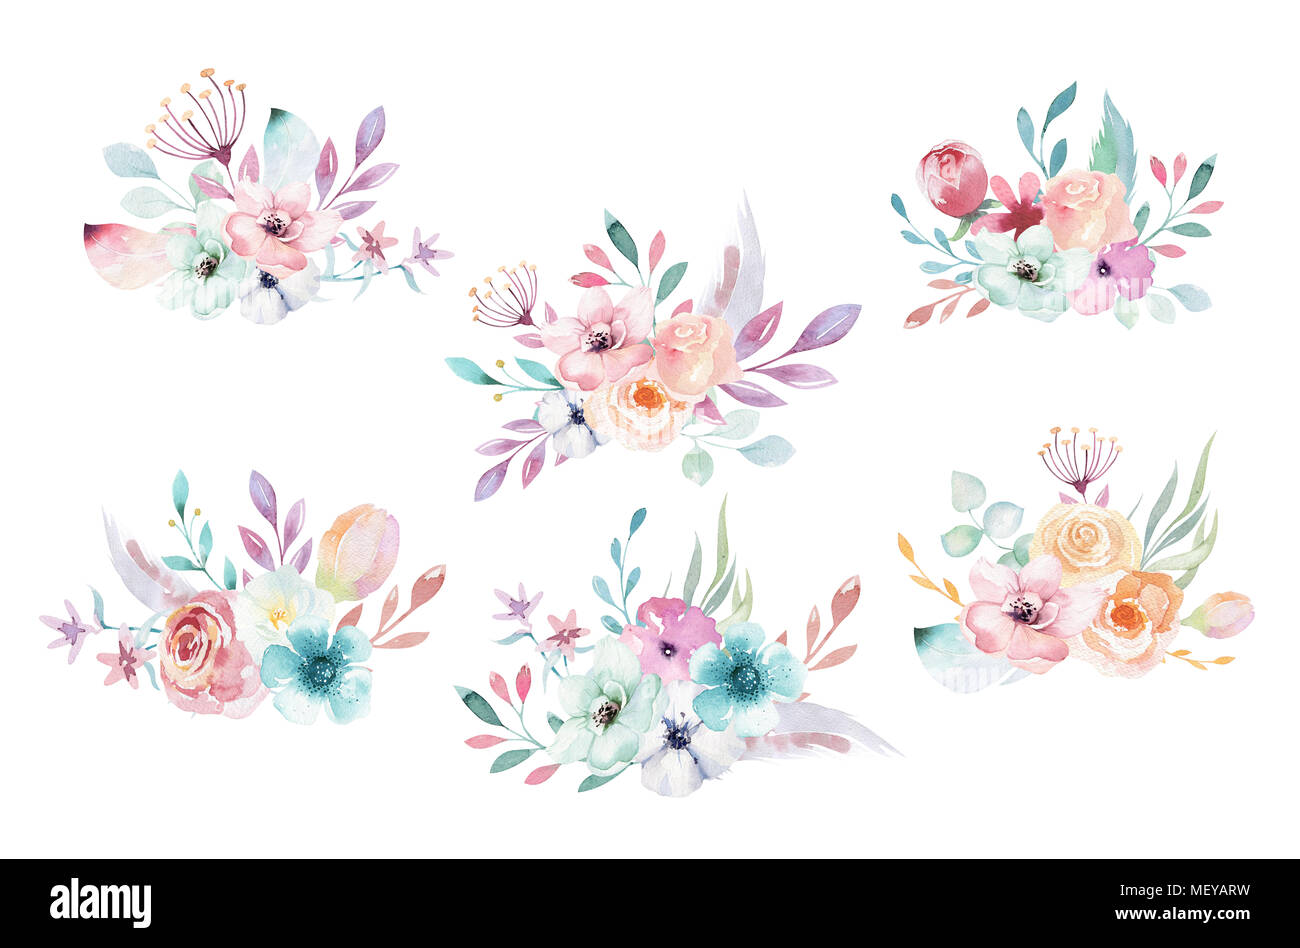 Set Of Watercolor Boho Floral Bouquets Bohemian Natural Frame Leaves Feathers Flowers Isolated On White Background Artistic Decoration Illustrat